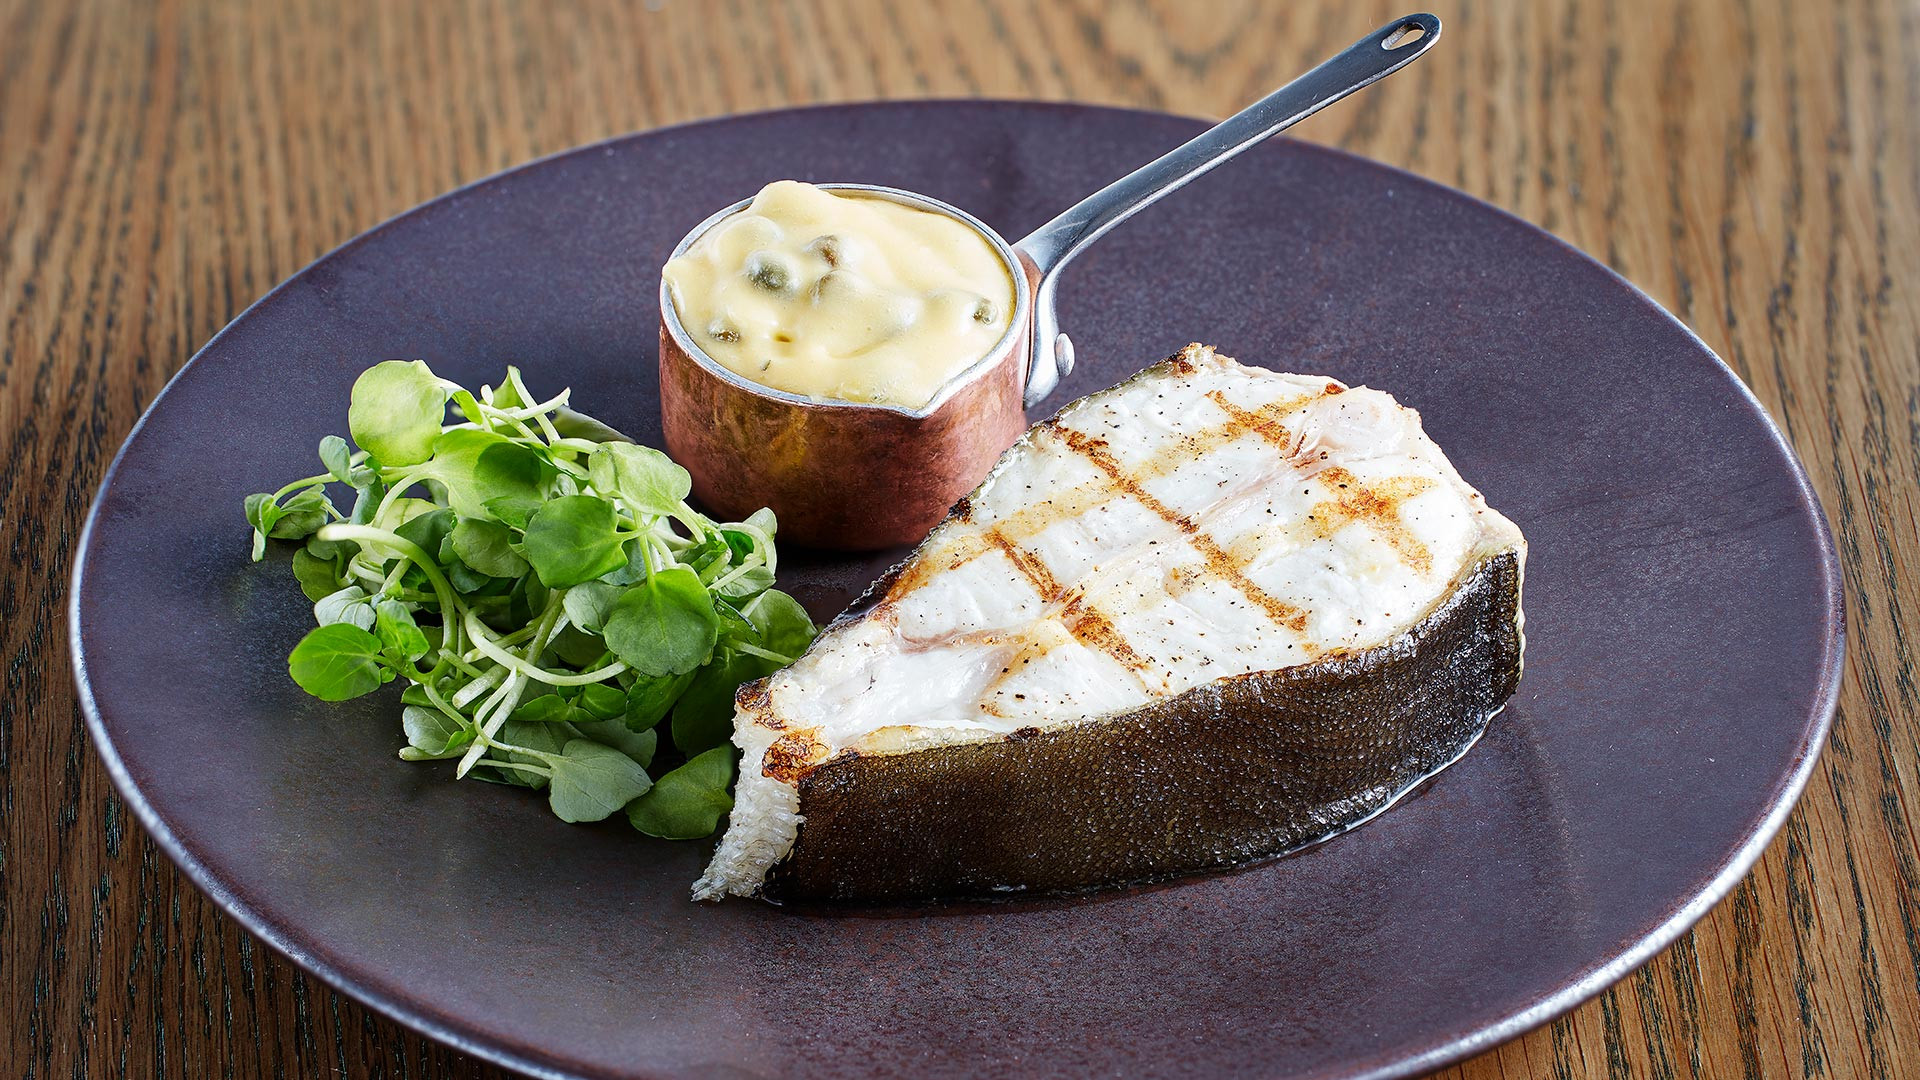 Grilled Isle of Gingha halibut with a traditional tartare hollandaise from the Chop House